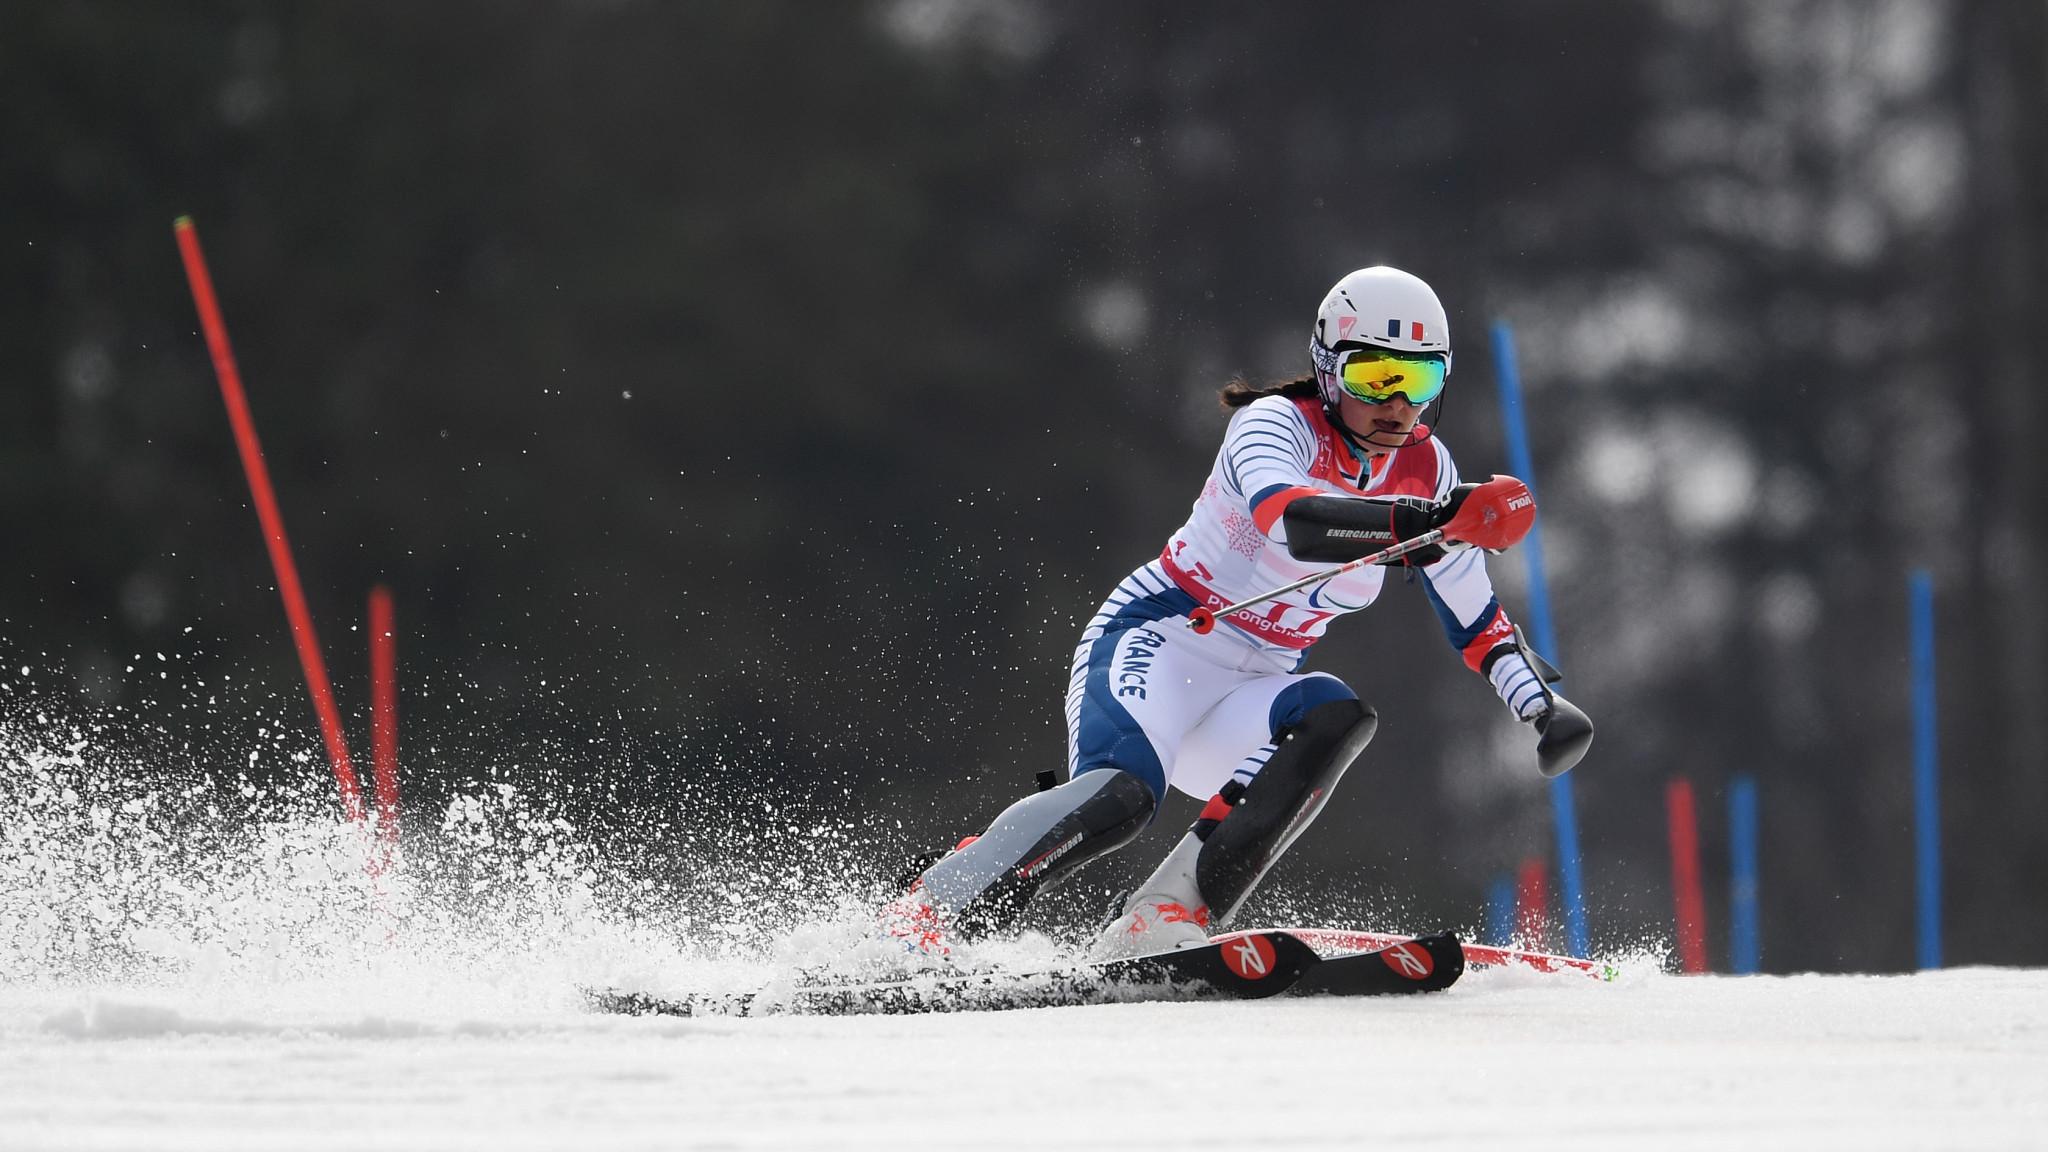 Bochet claims fifth gold as World Para Alpine Skiing Championships ends